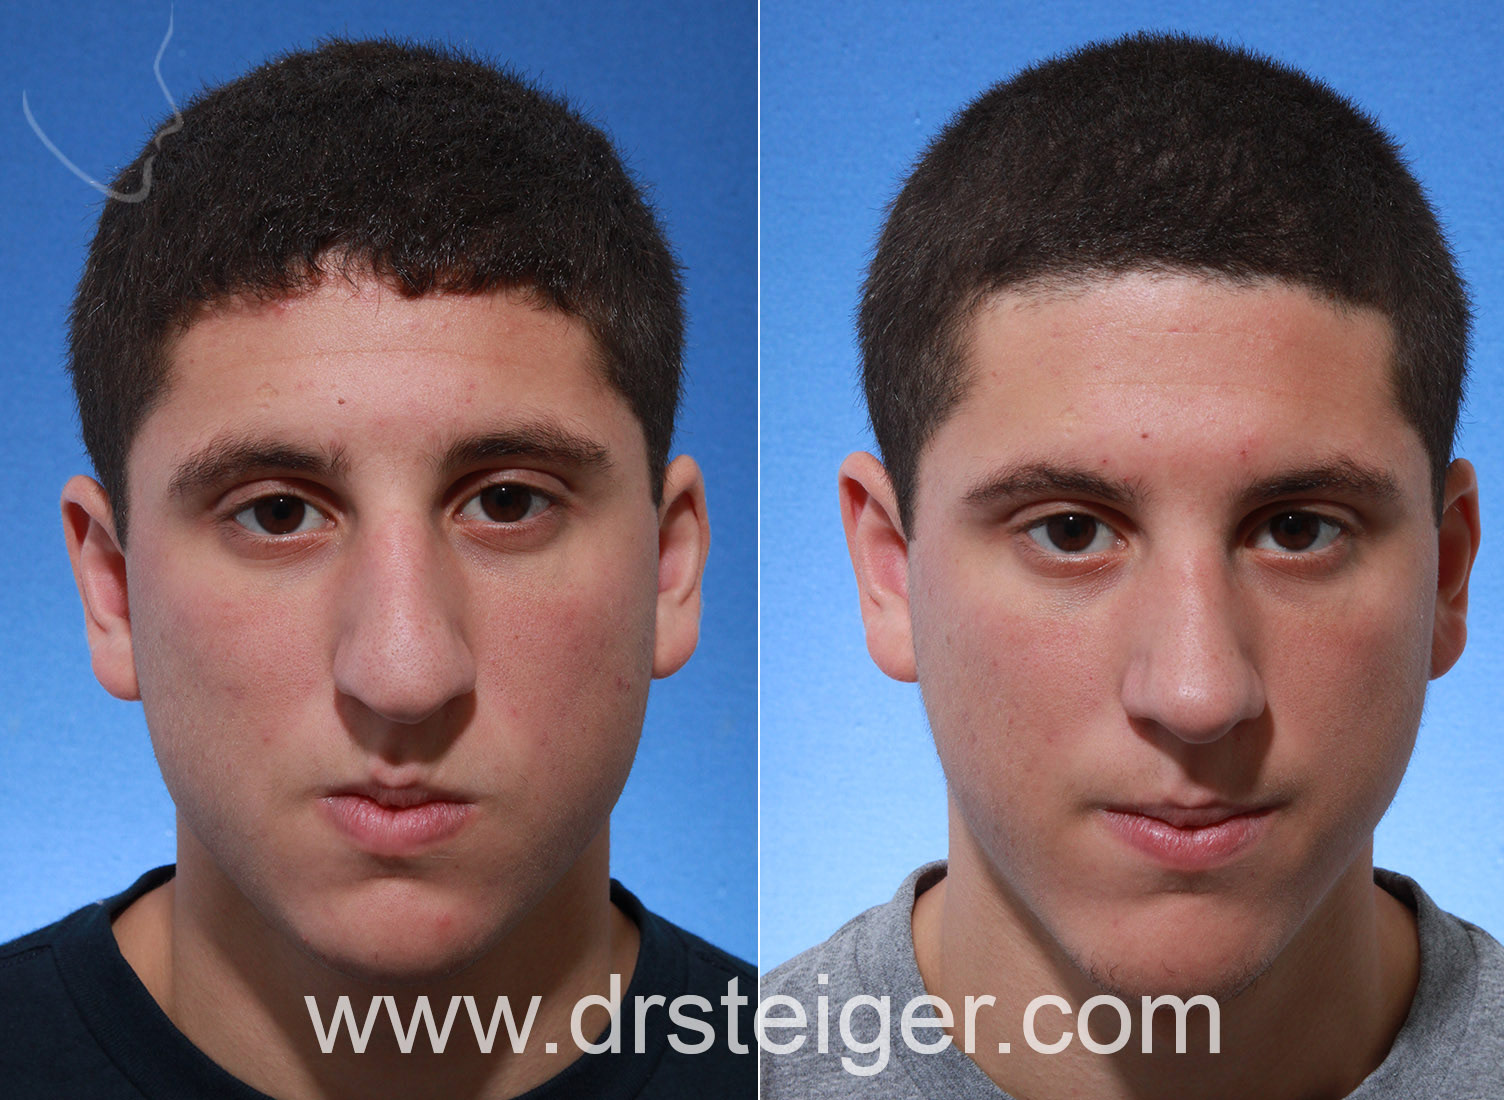 rhinoplasty with chin implant in a man